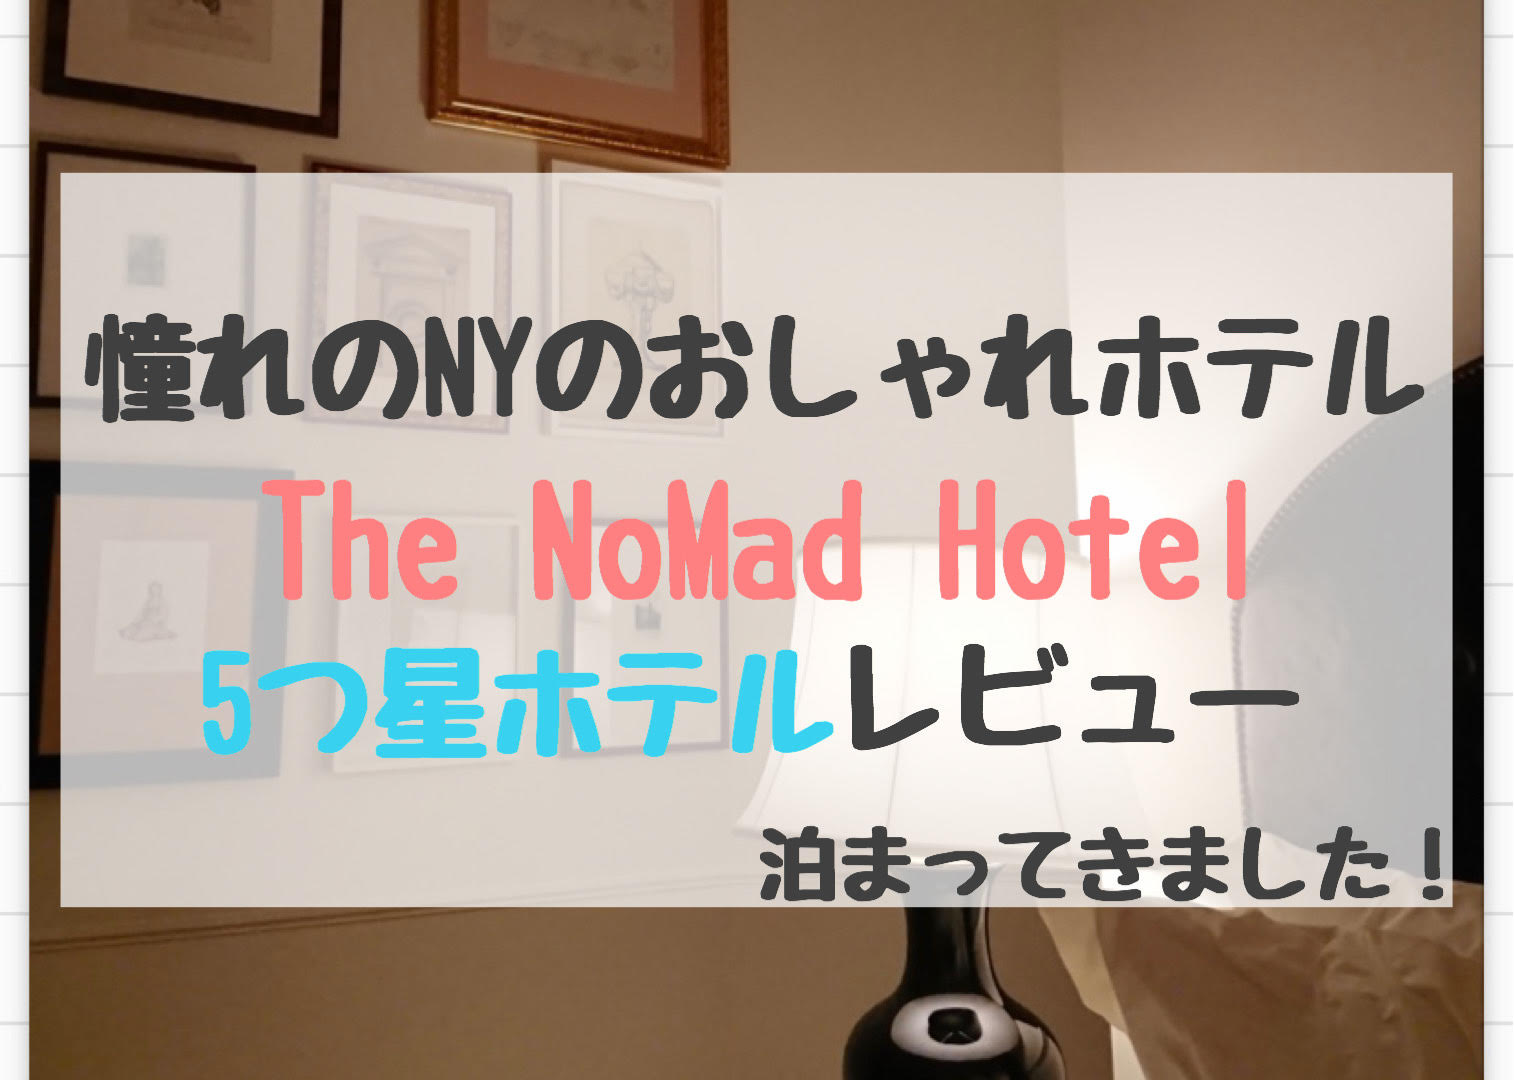 the nomad hotel ノマドホテル